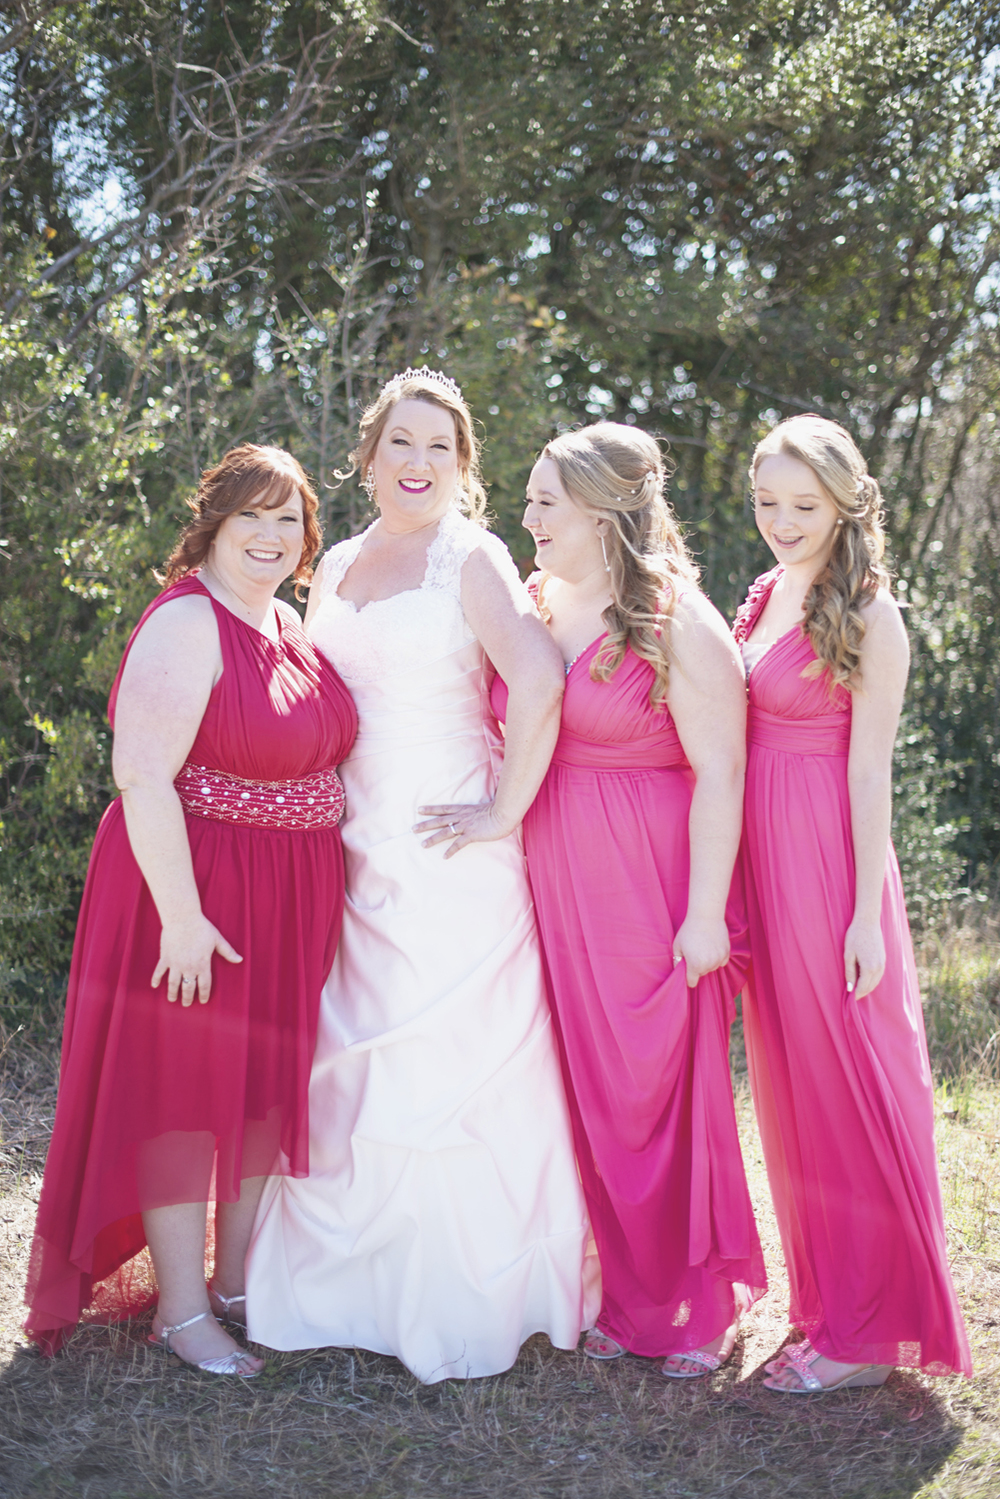 Pink and white wedding | Bridesmaids dresses